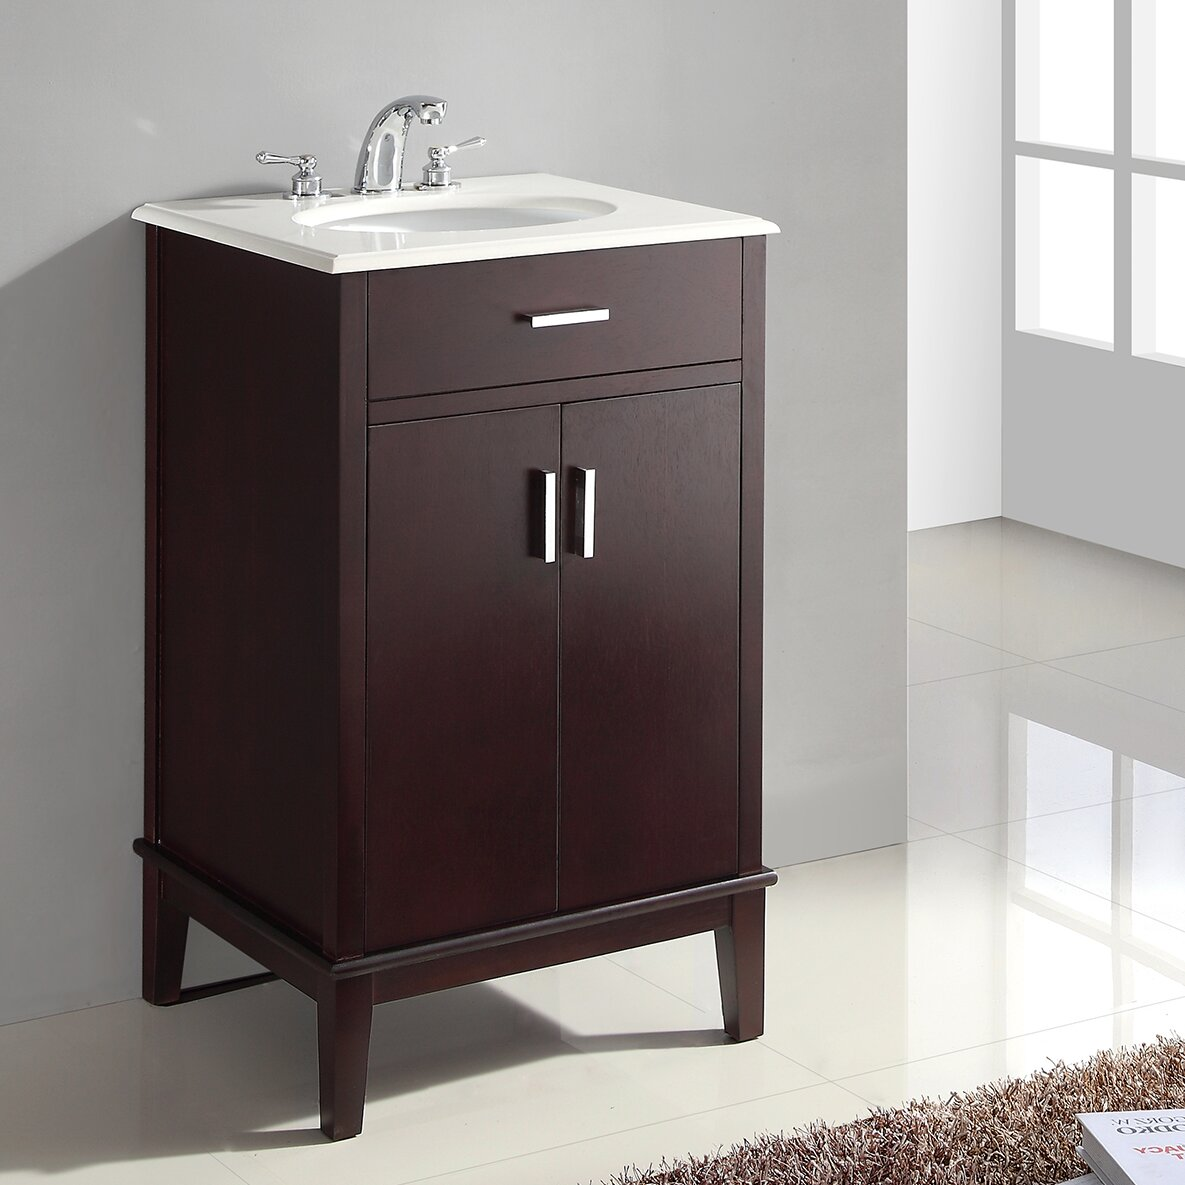 Varick gallery pinecrest 21 single bathroom vanity set for Bath and vanity set